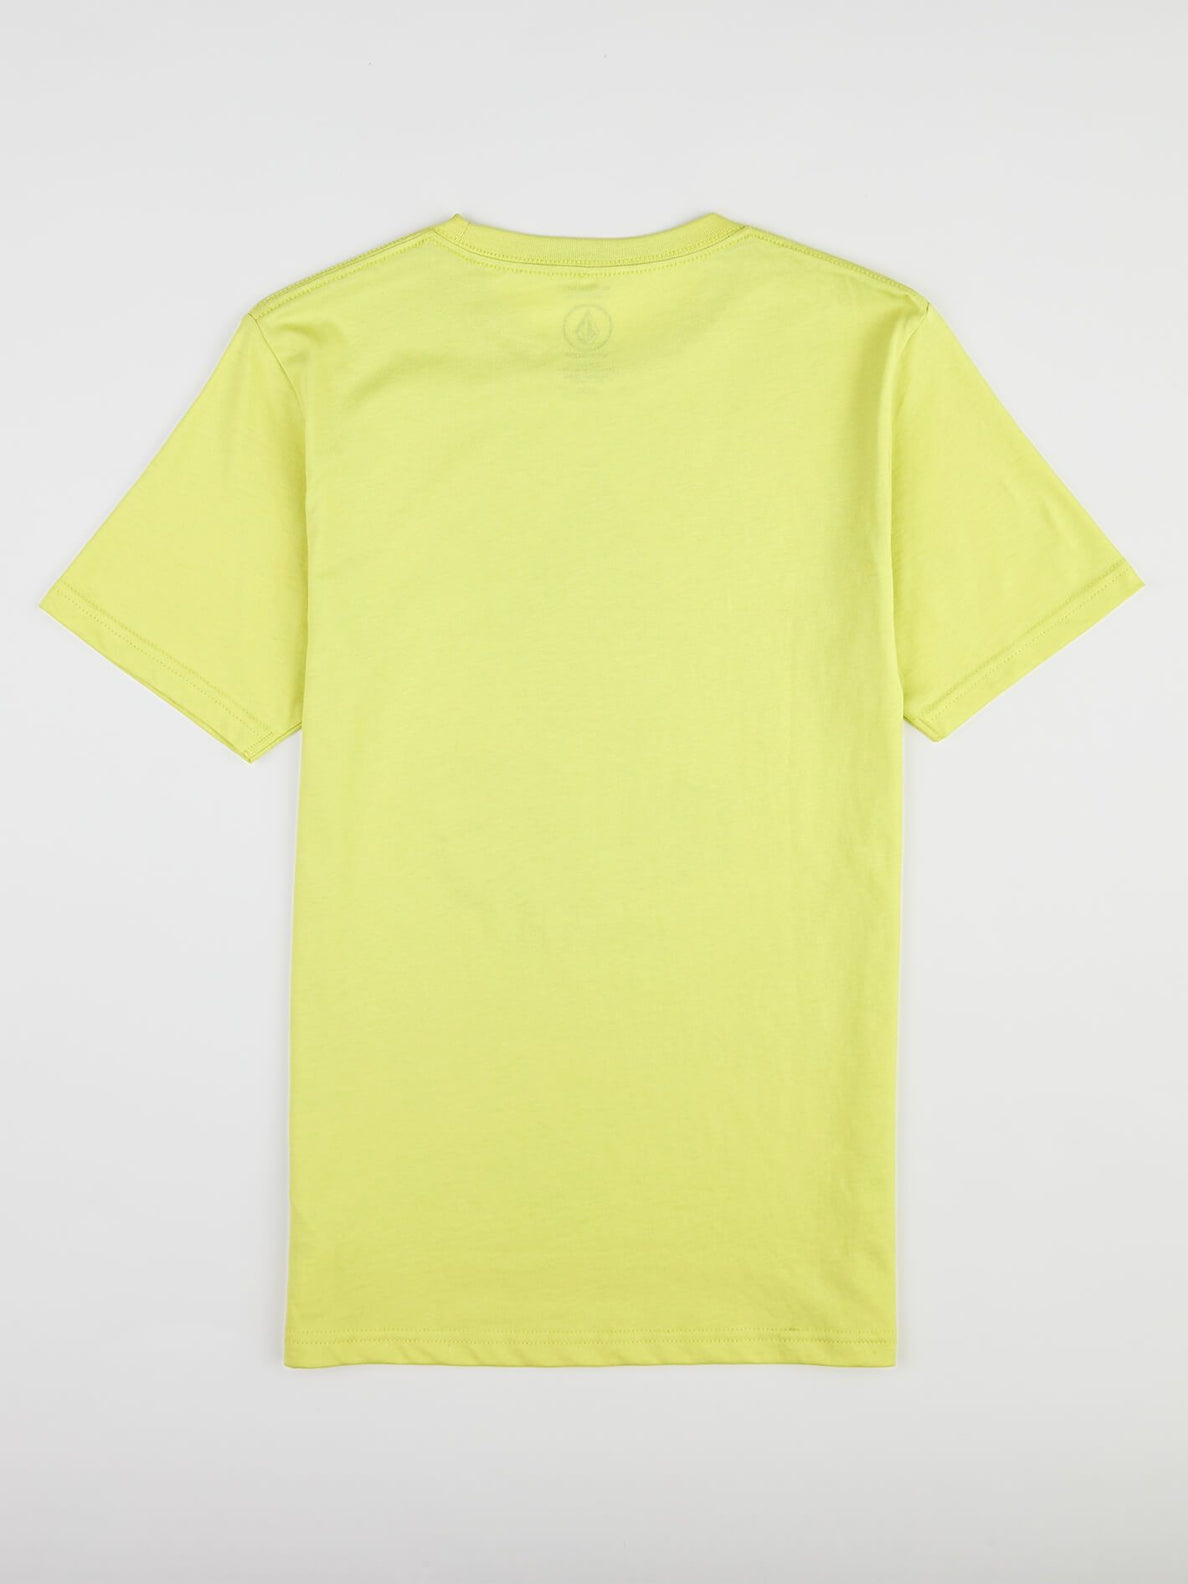 Big Boys Classic Stone Tee In Shadow Lime, Back View